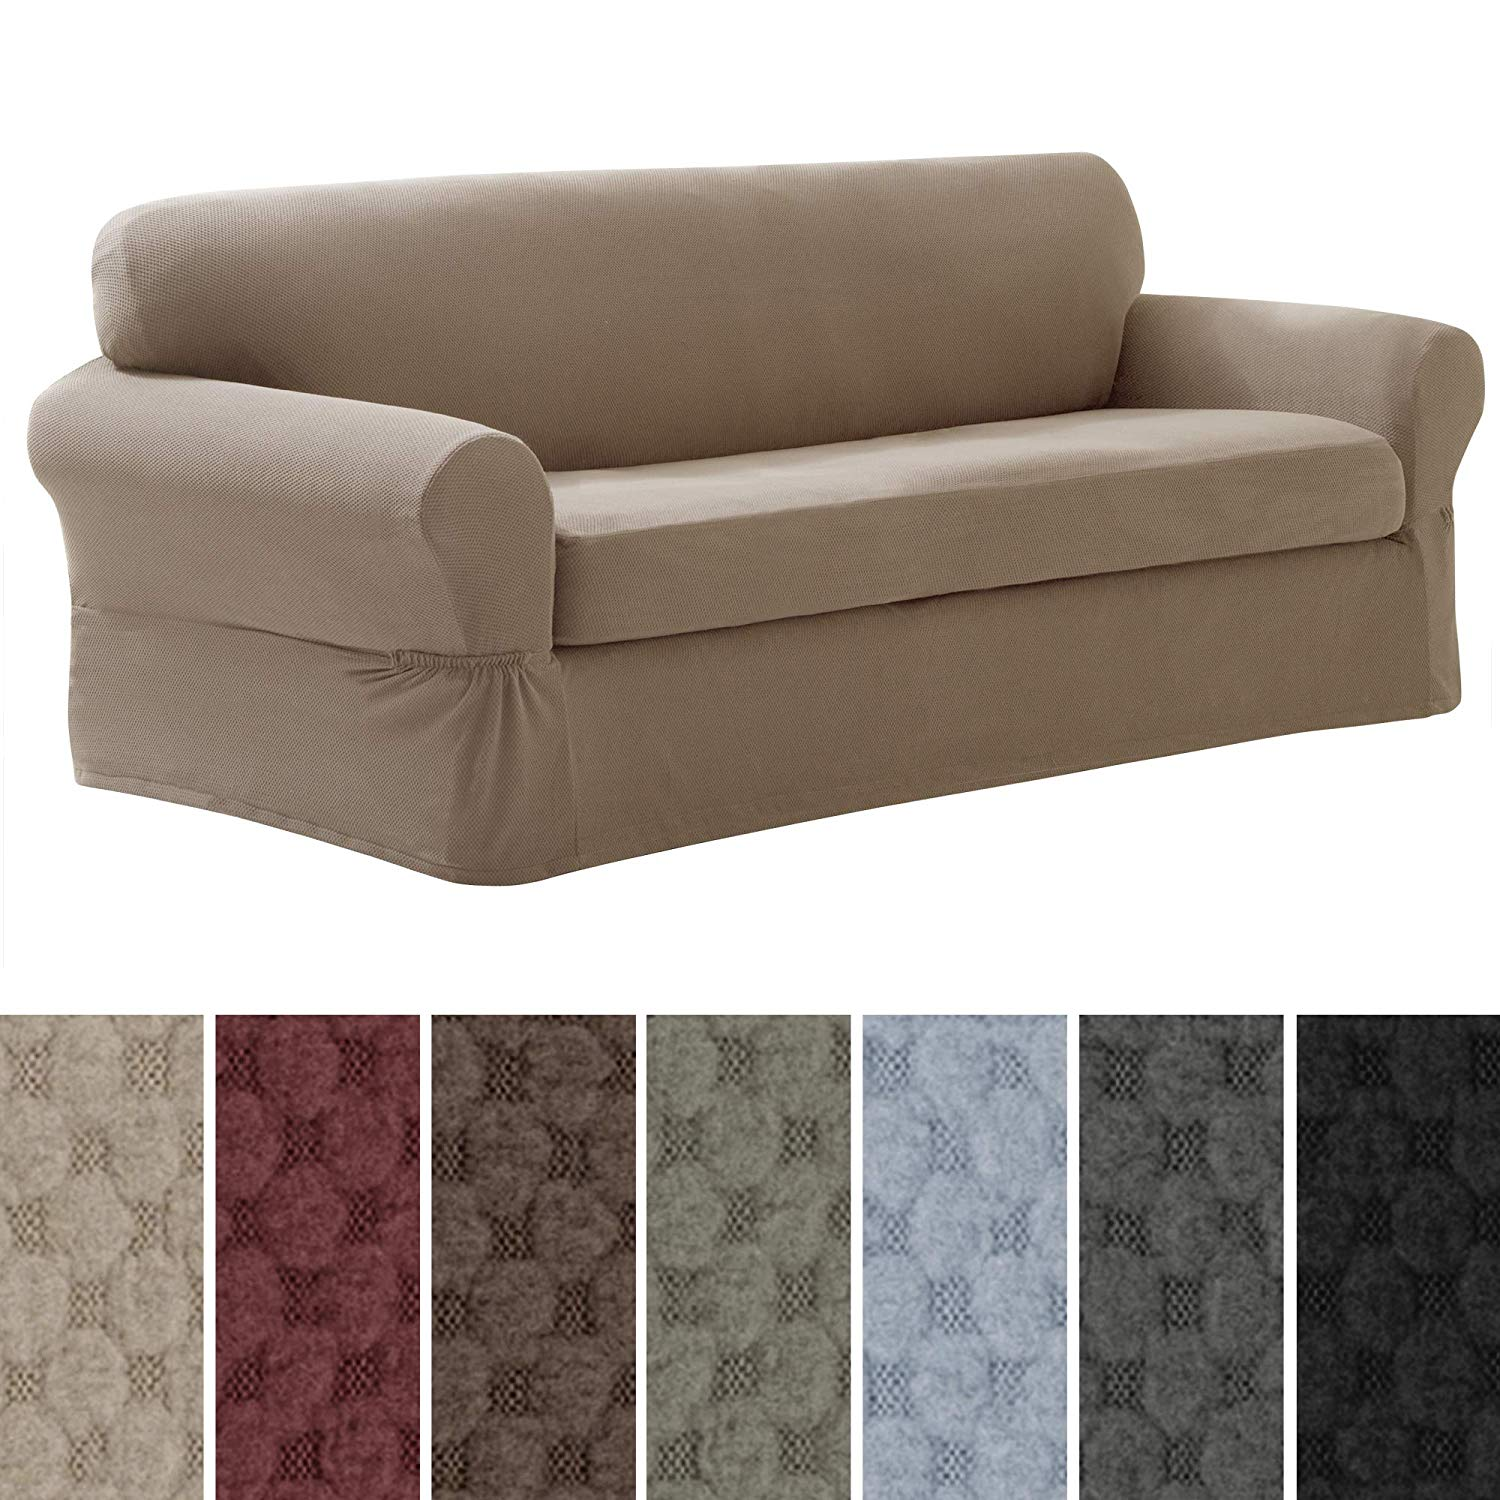 Maytex-Pixel-Stretch Two-Piece-Slipcover